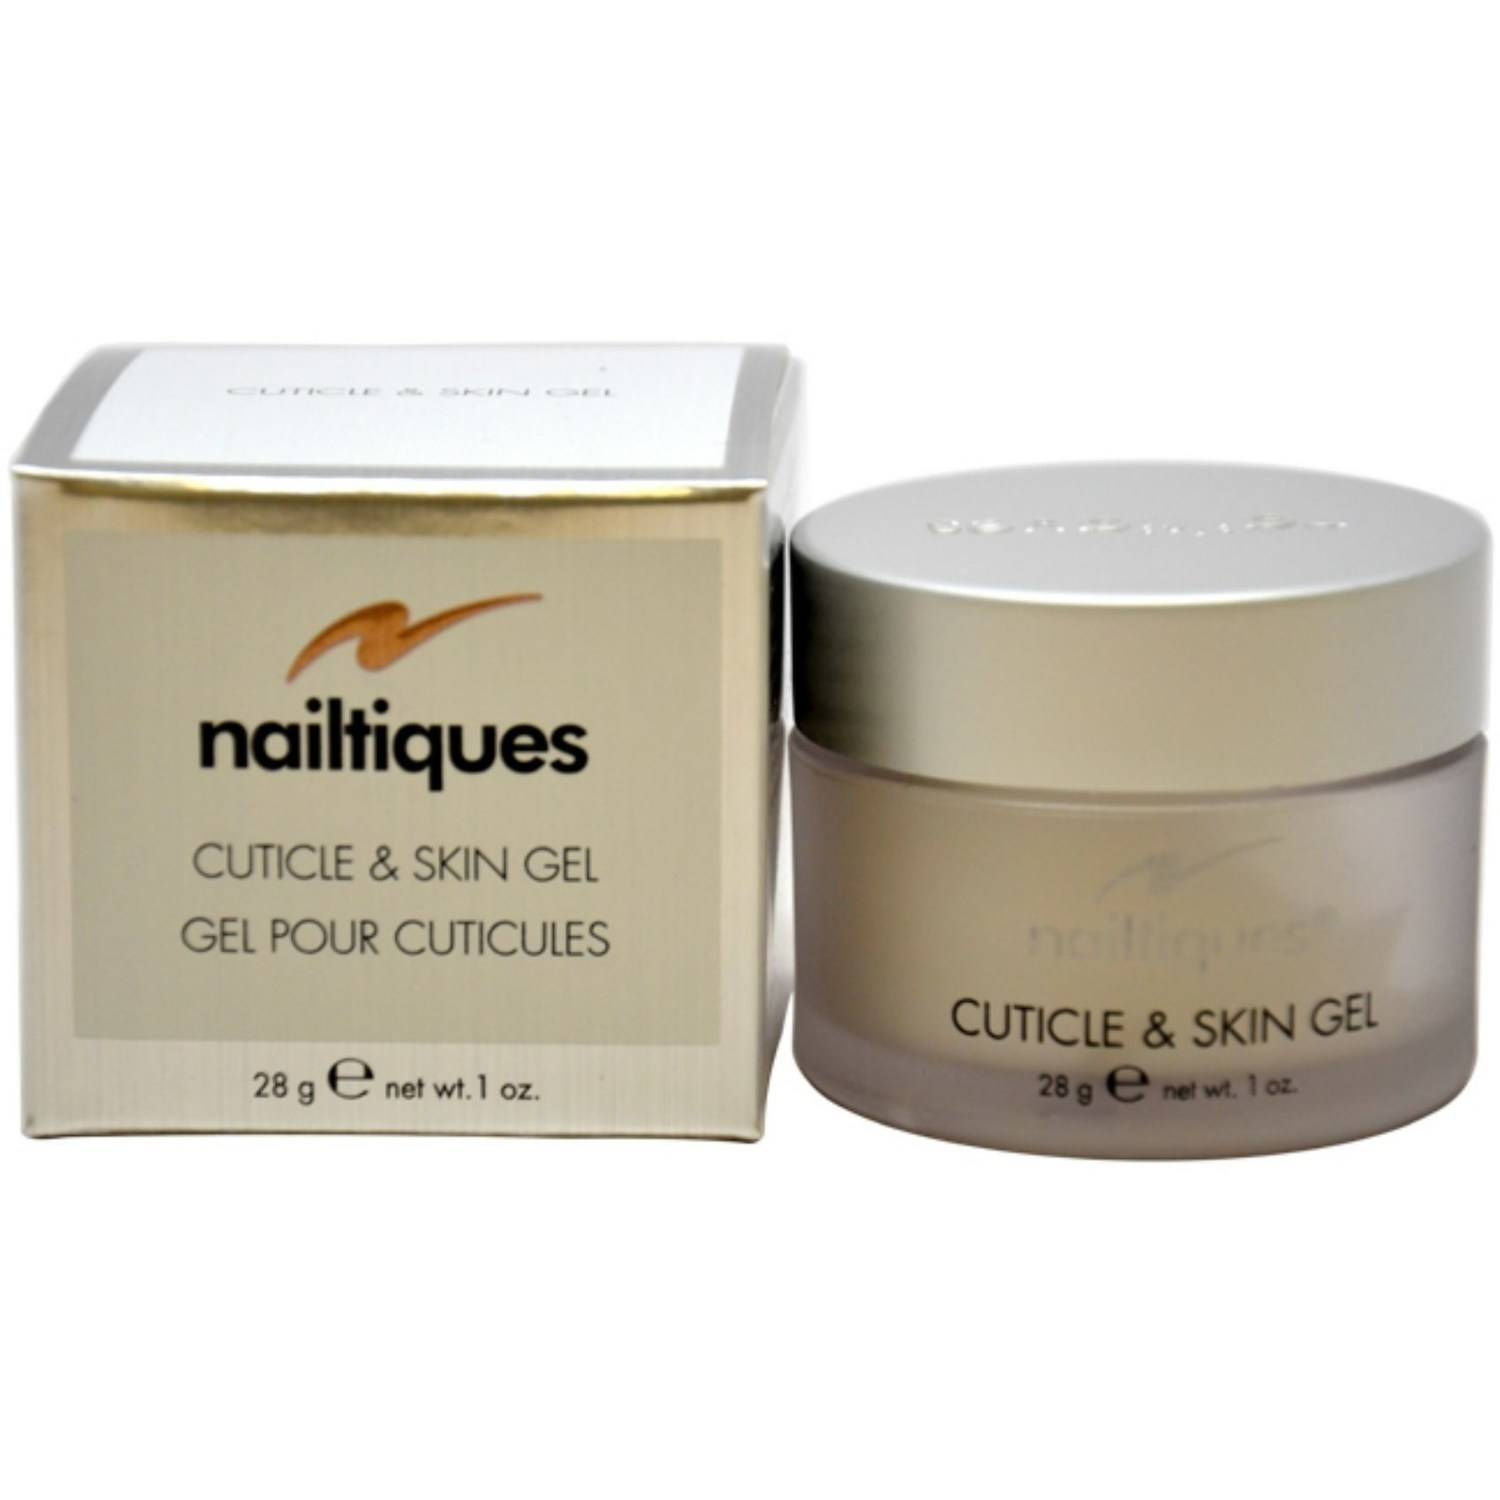 Nailtiques Cuticle & Skin Gel by Nailtiques for Women, 1 oz